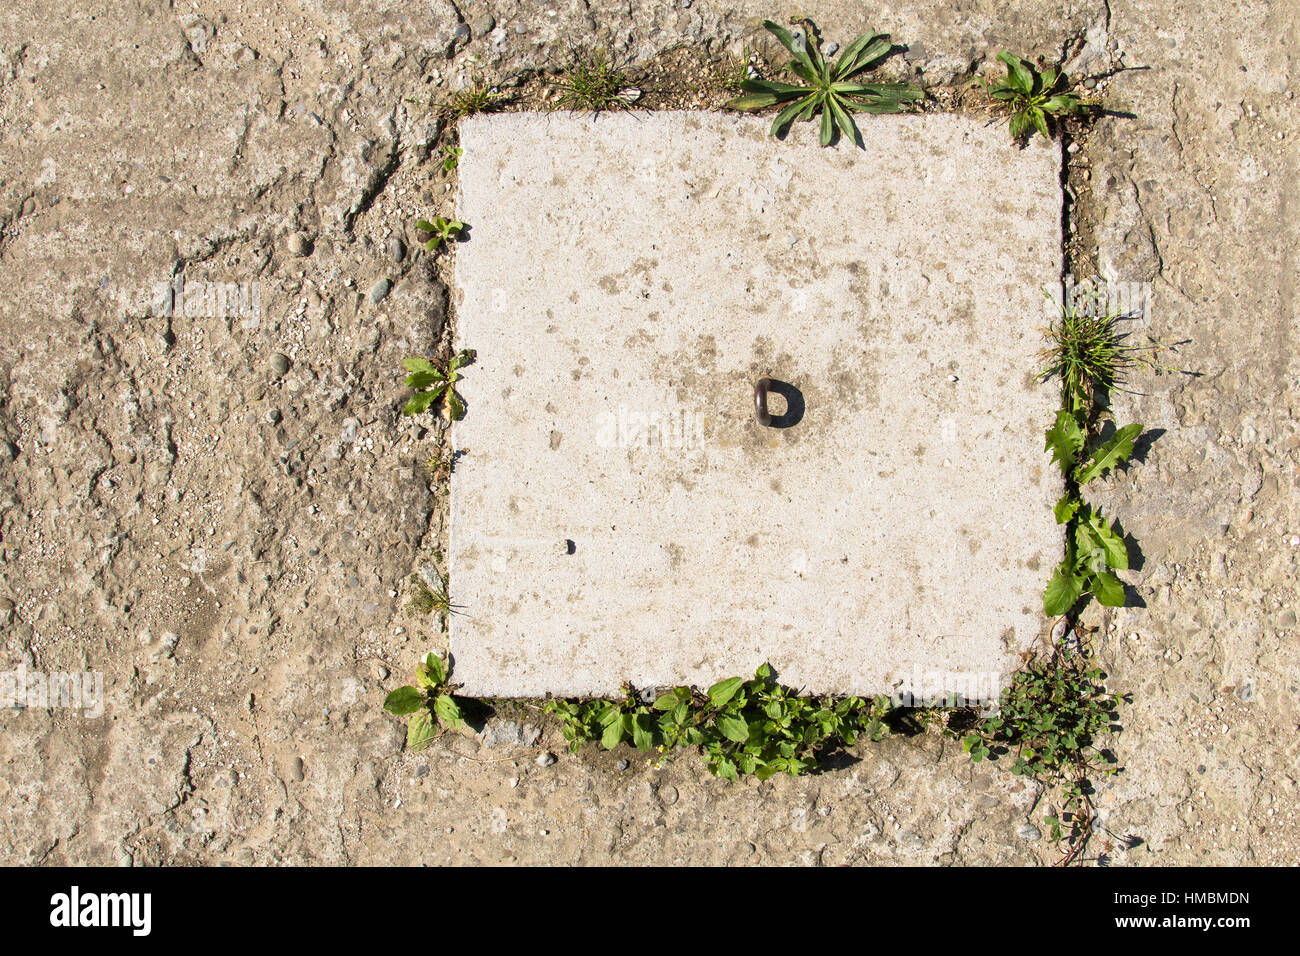 Background image mdn - Stock Photo Square Hatch On A Concrete Background